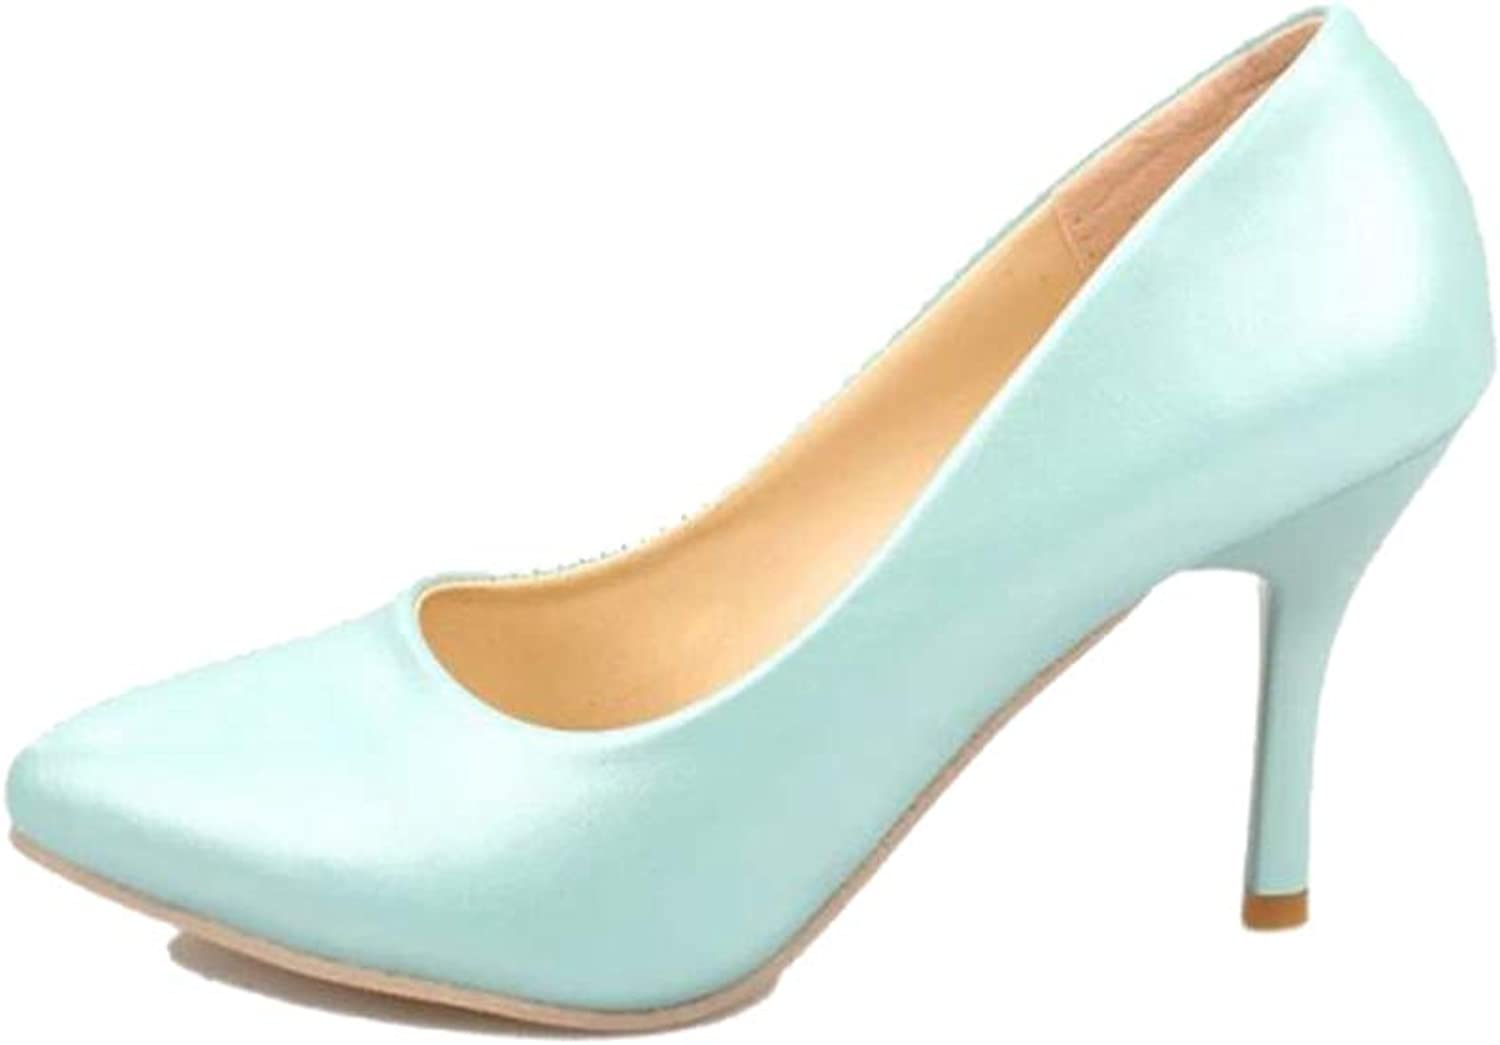 Sam Carle Women's Pump,Simple Slip-on High Heel Pink Green Pointed-Toe Business shoes